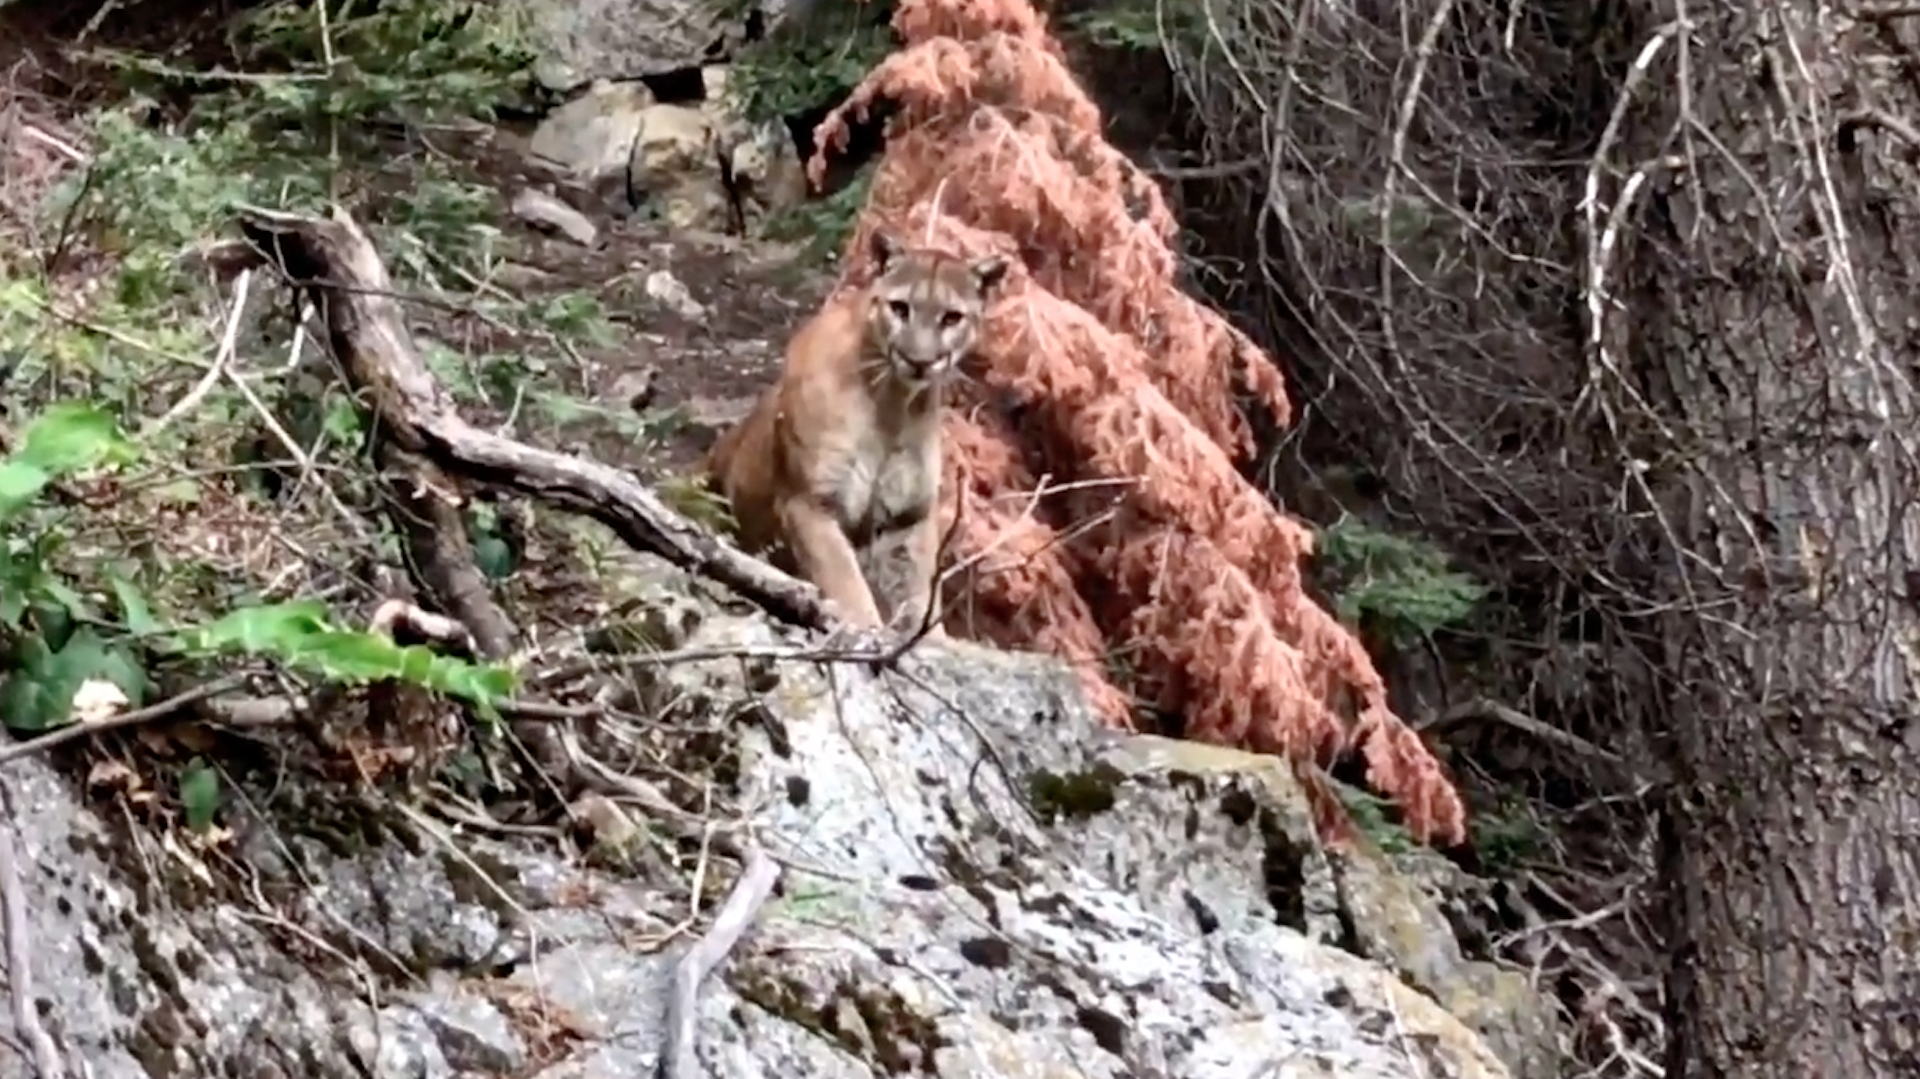 Watch Heart Stopping Encounter Between Hikers And Mountain Lion The Washington Post > how to get os x lion, mountain lion. watch heart stopping encounter between hikers and mountain lion